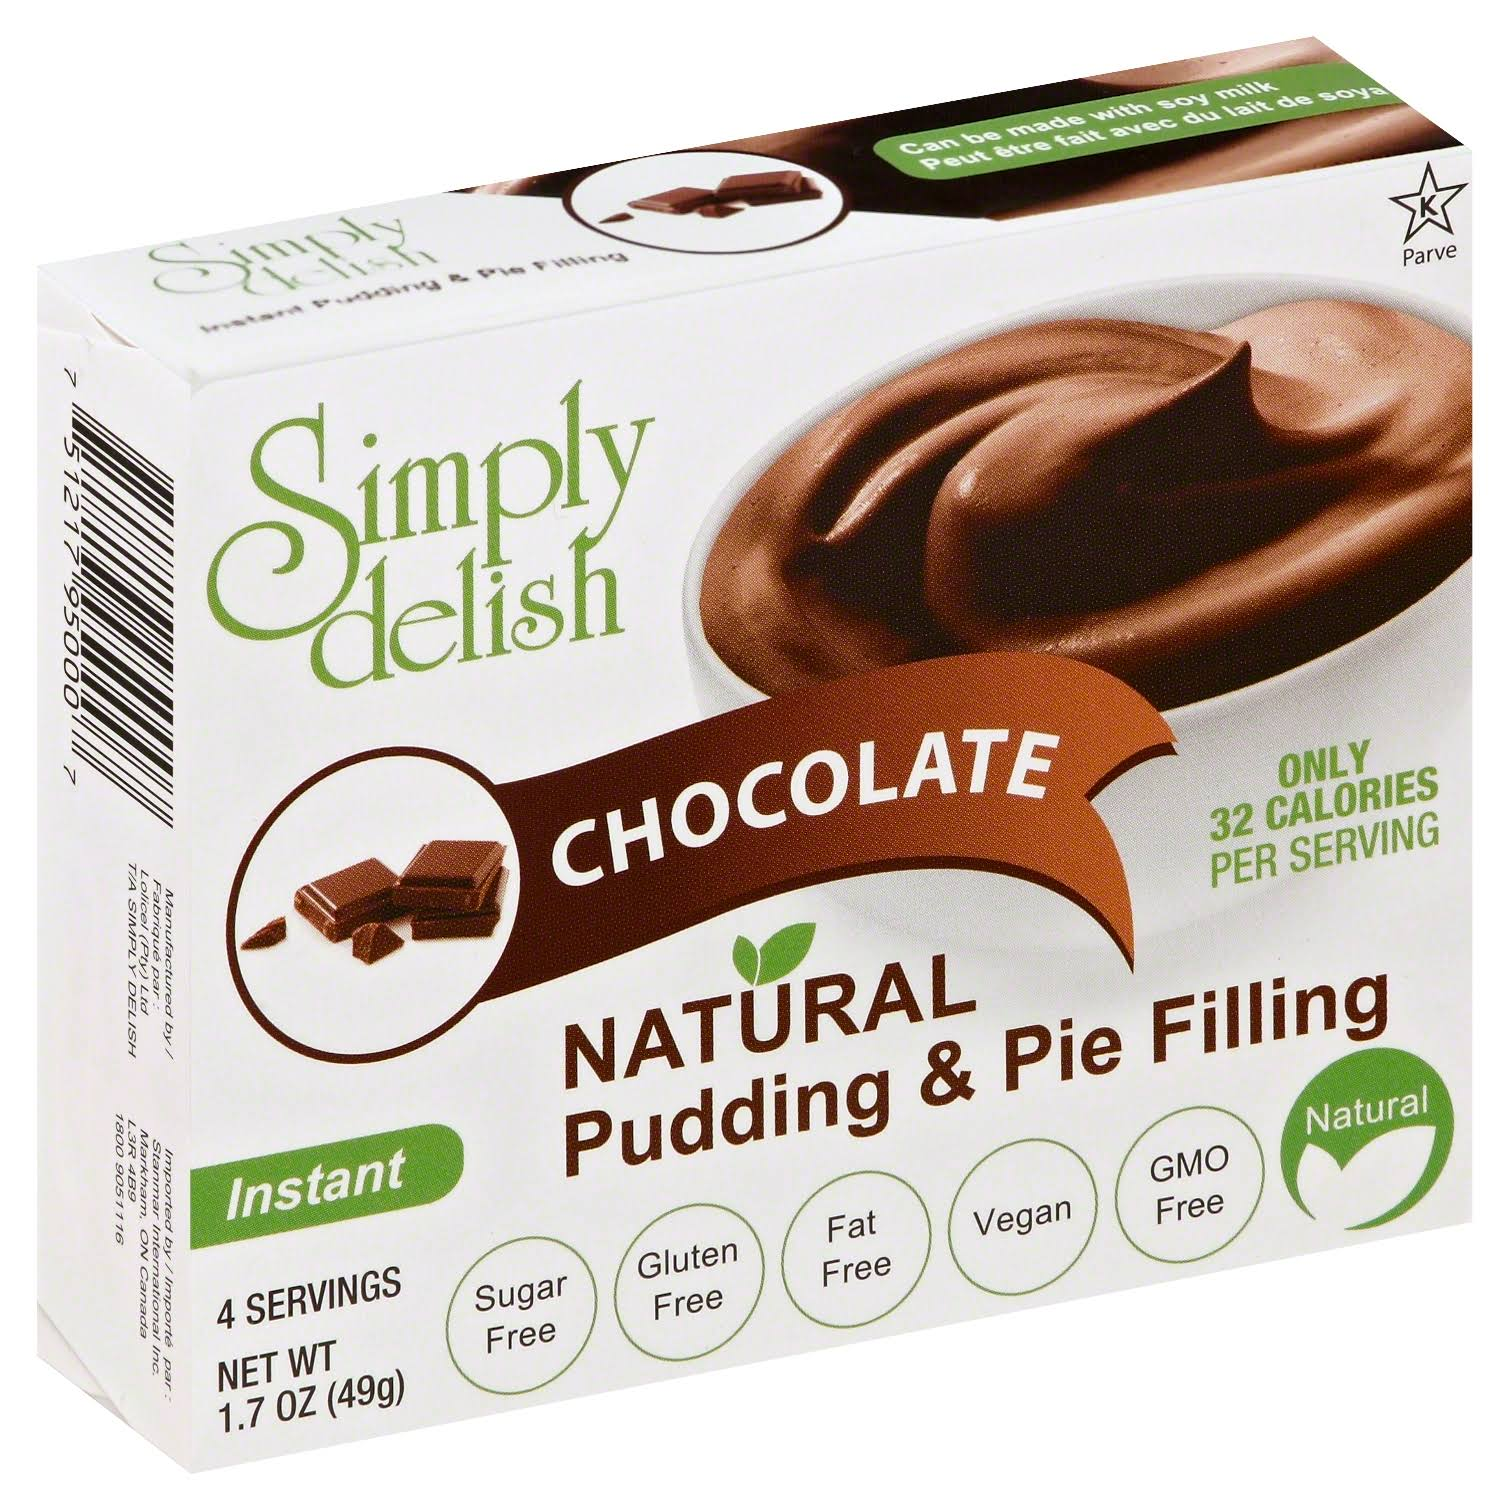 Simply Delish Chocolate Pudding and Pie Filling - 1.7oz